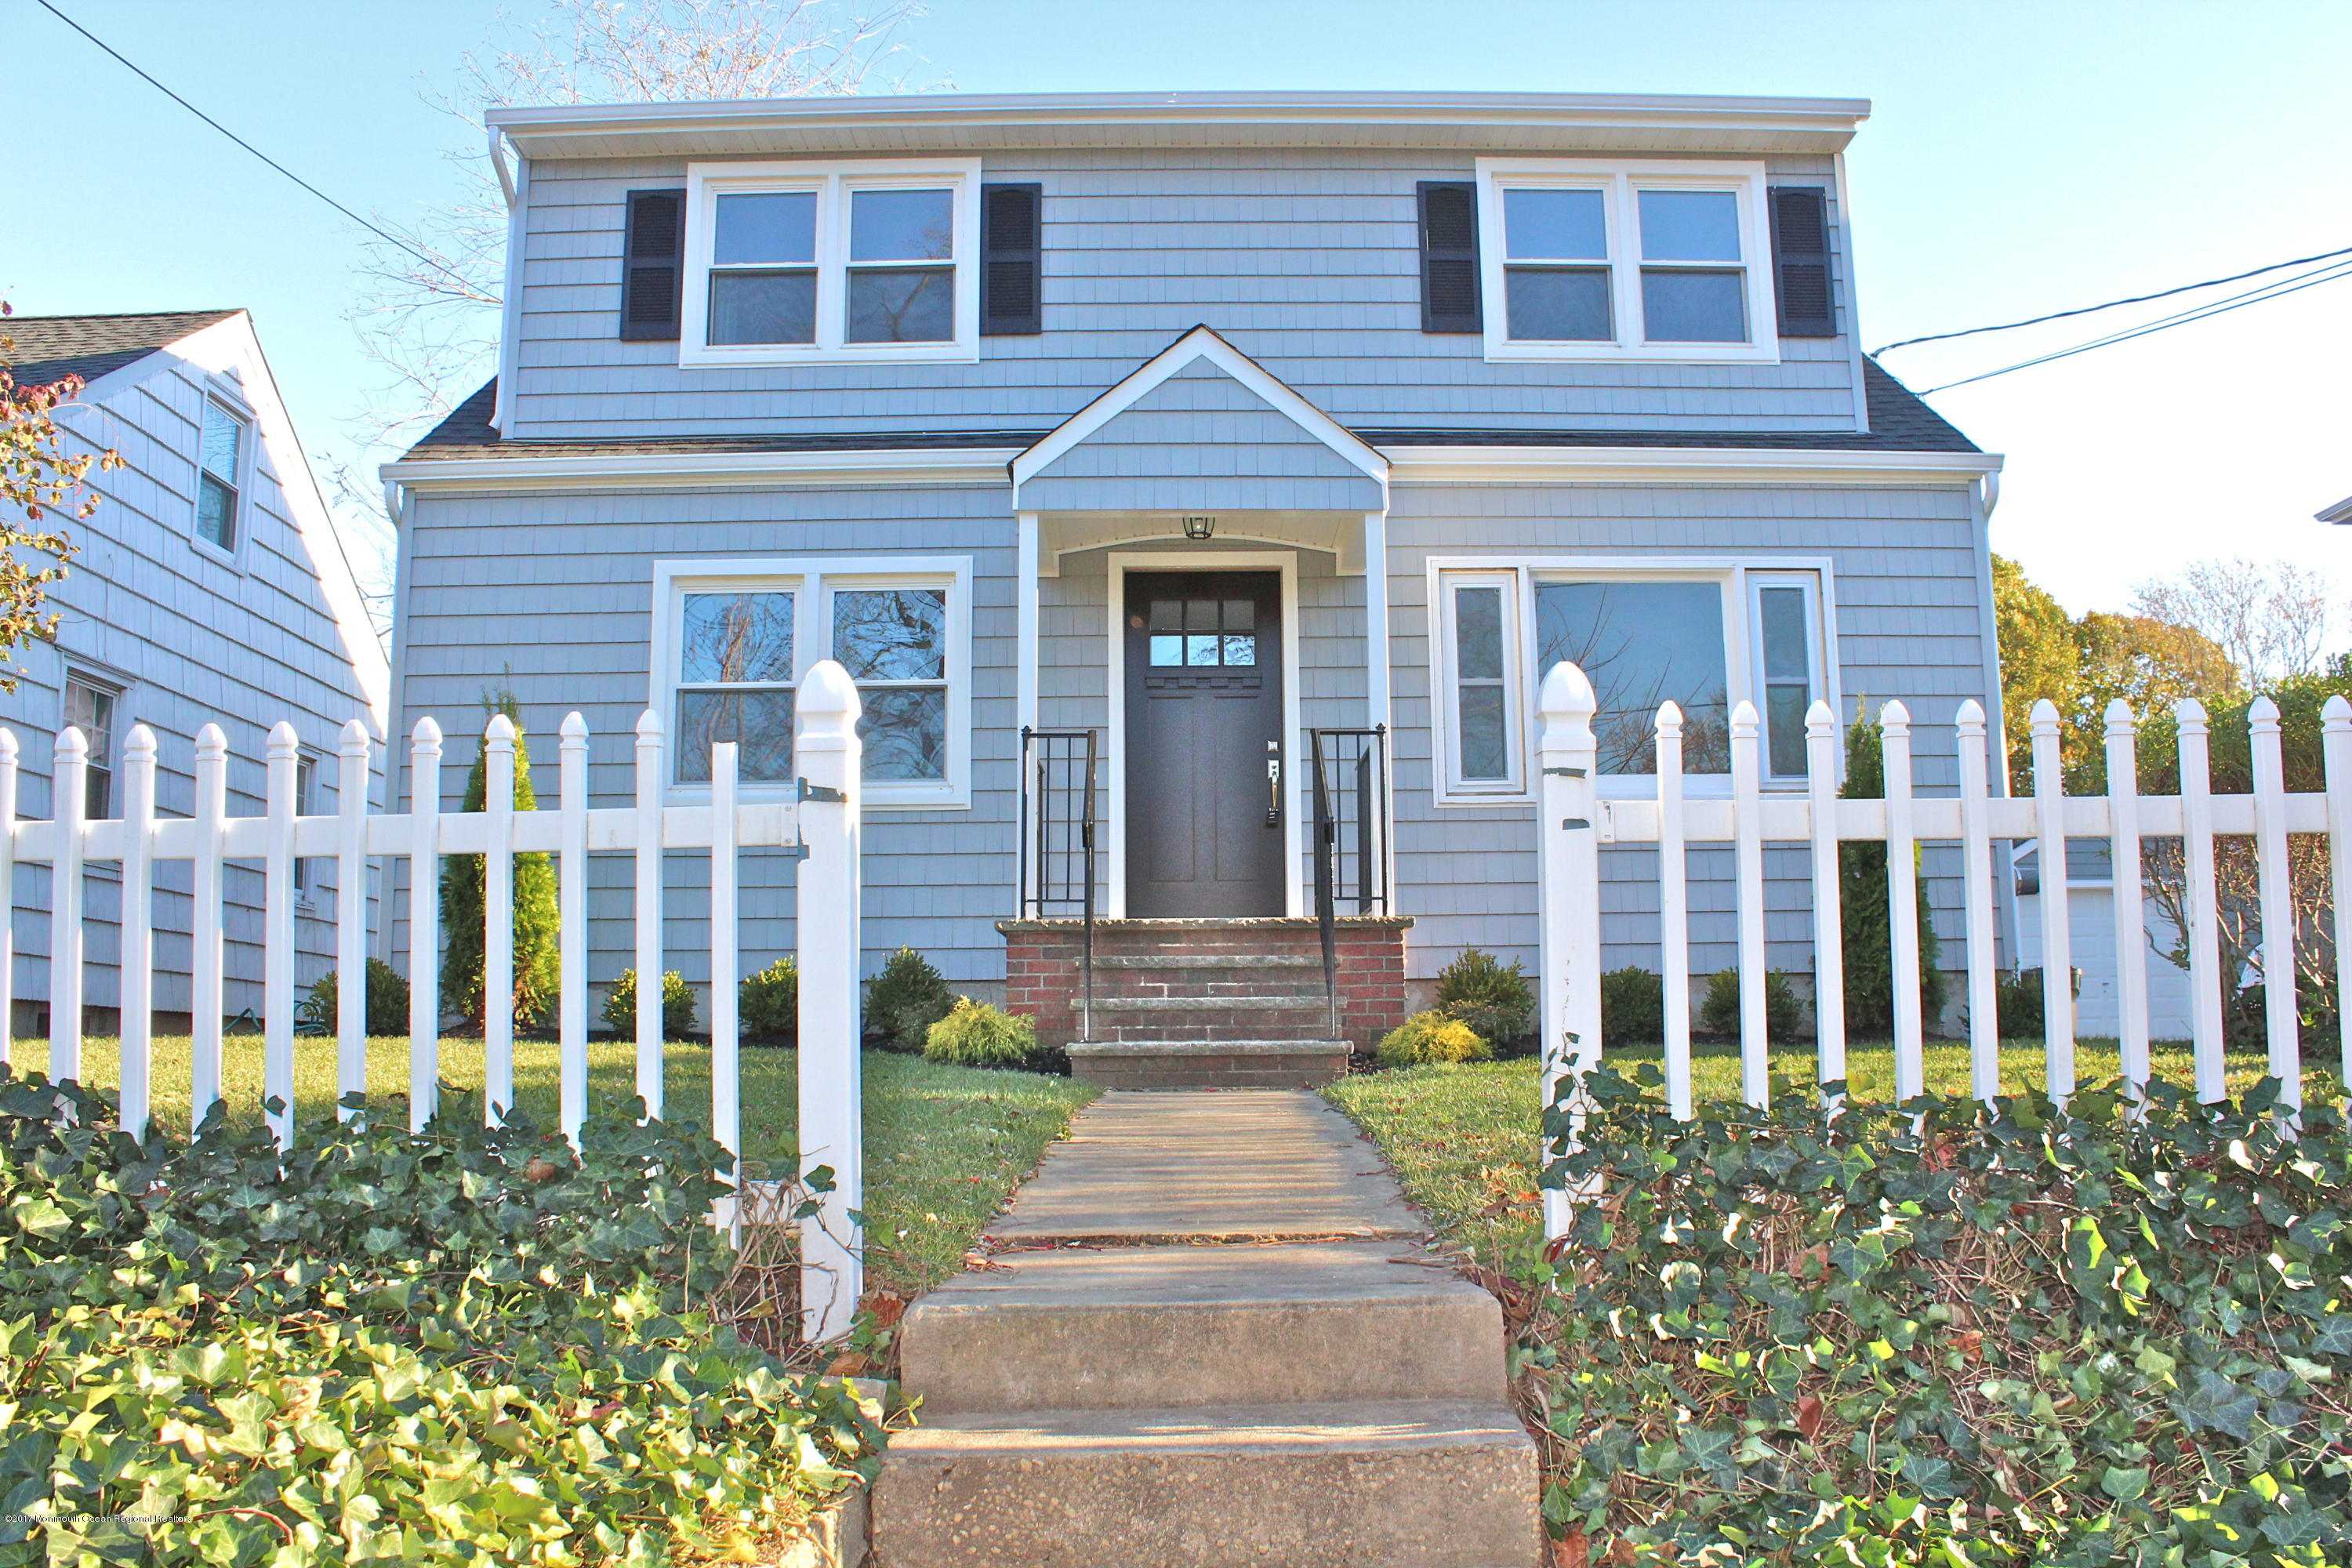 609 W FRONT STREET, RED BANK, NJ 07701